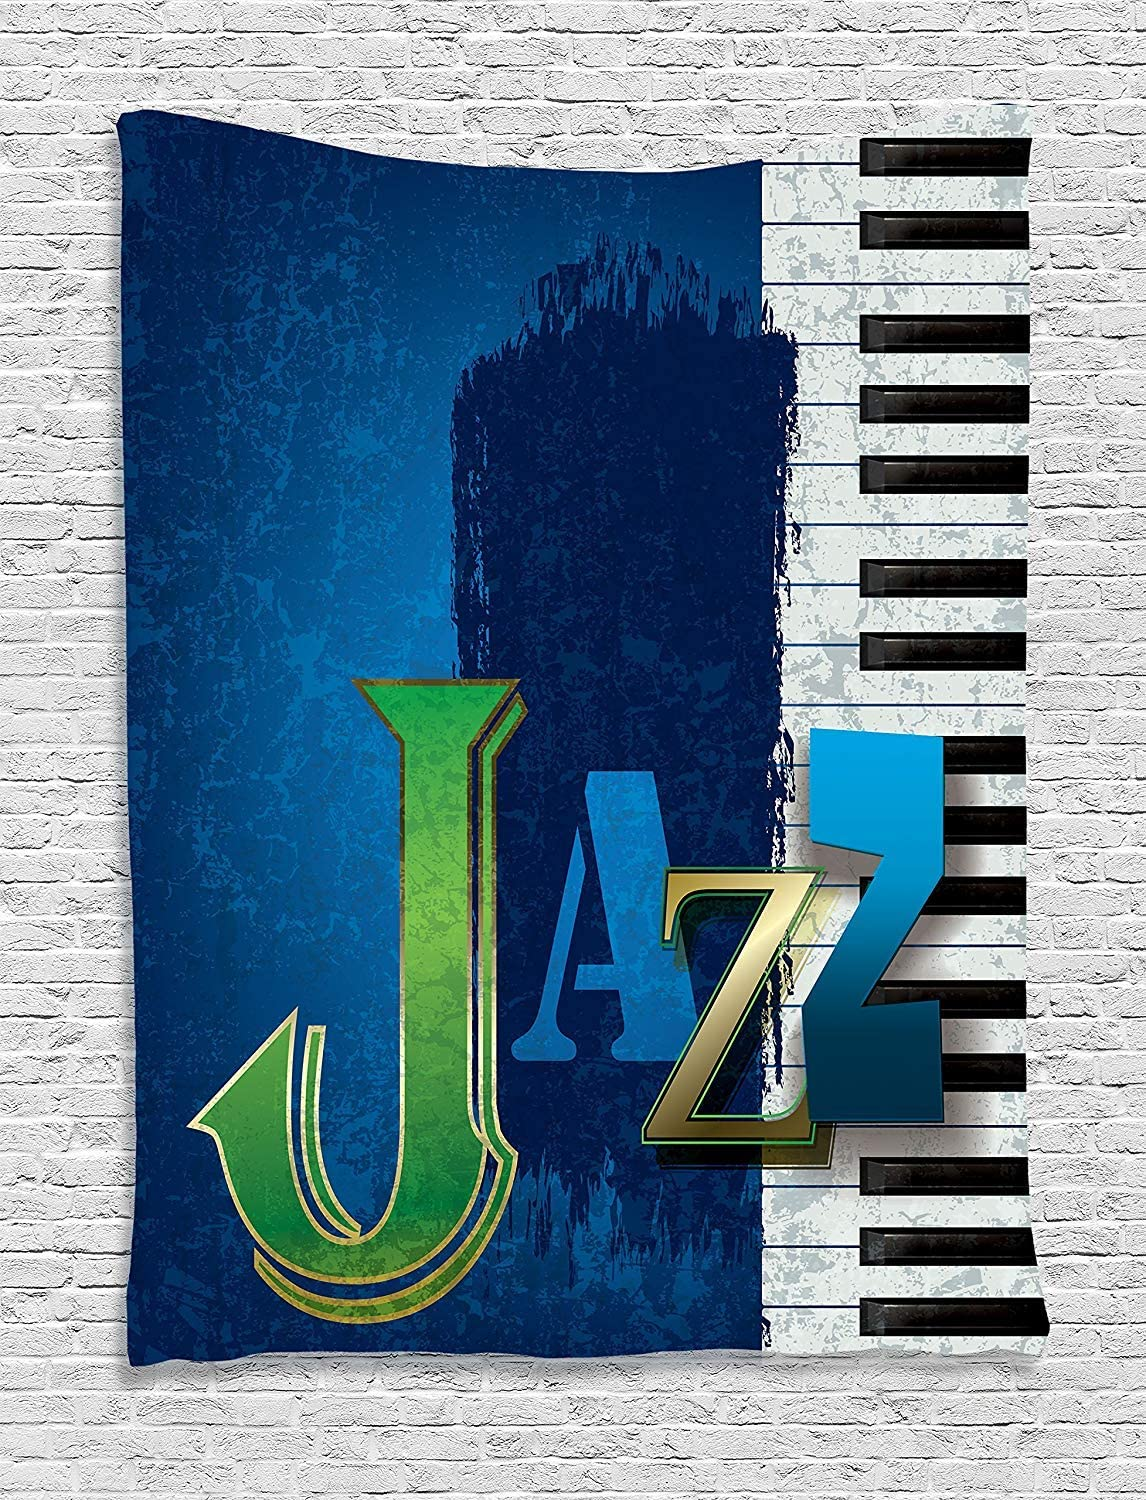 Ambesonne Jazz Music Tapestry, Abstract Cracked Jazz Music Background with Piano Keys Music Themed Print, Wall Hanging for Bedroom Living Room Dorm Decor, 40